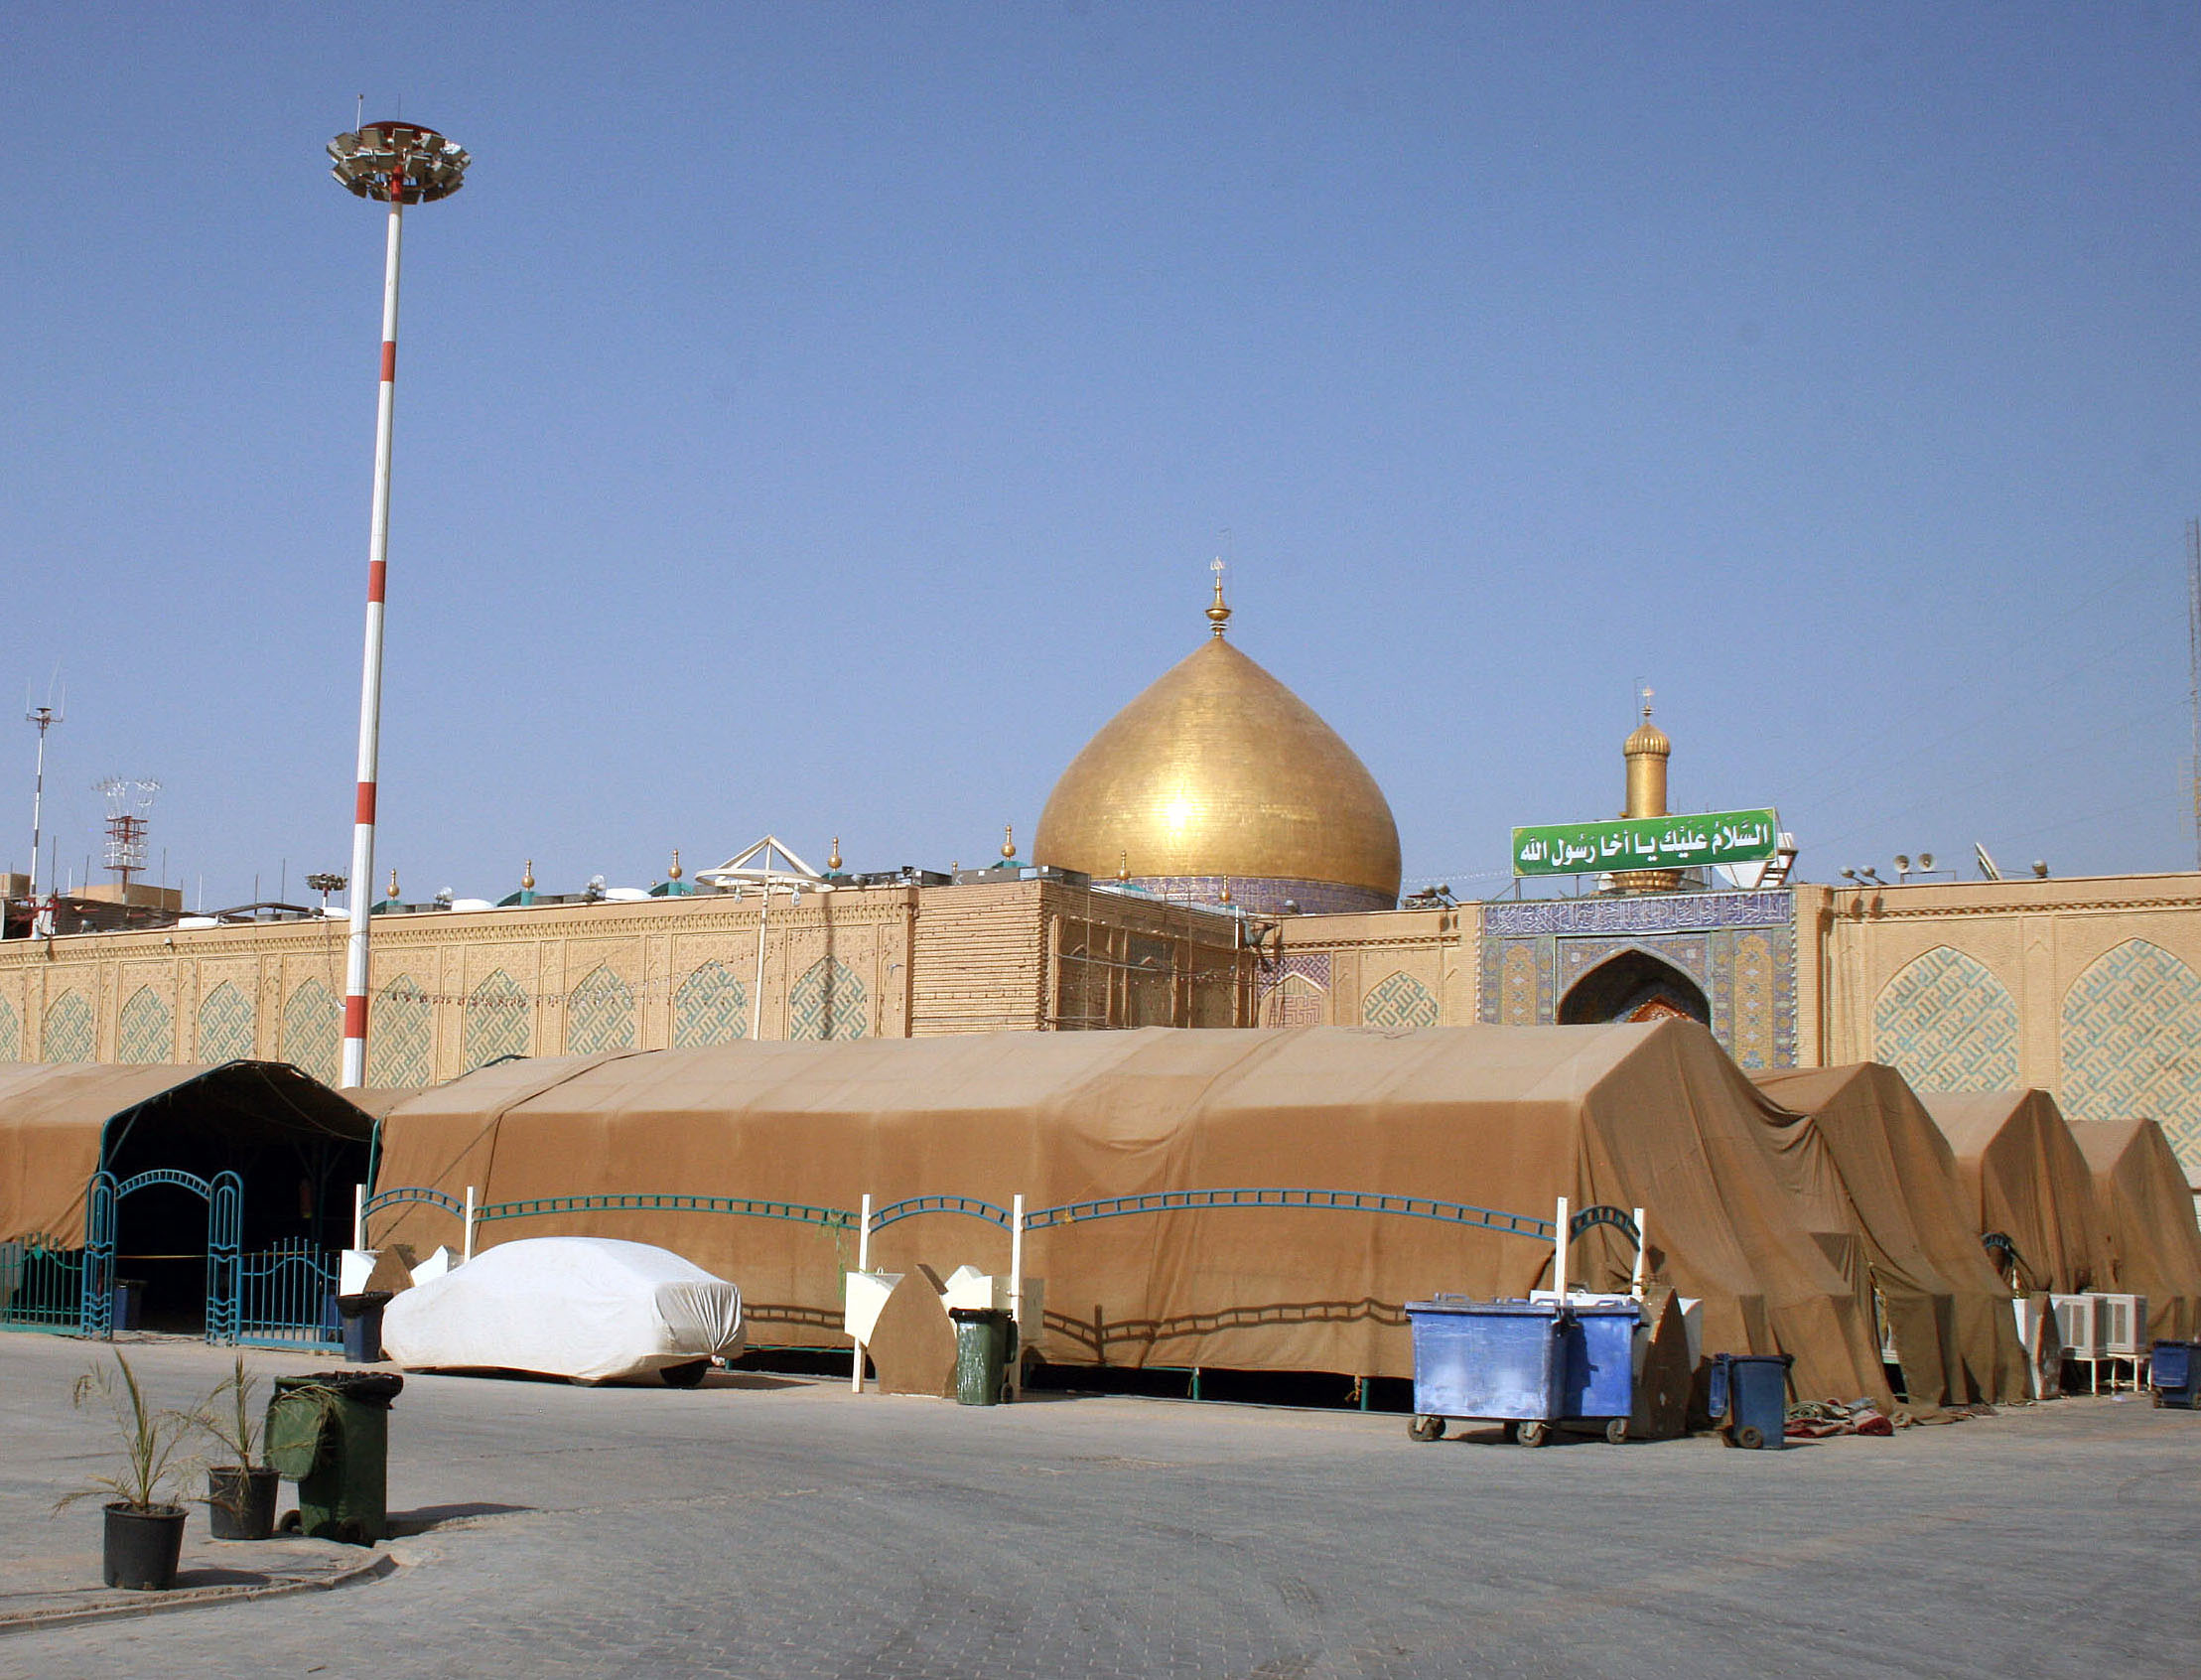 Pilgrims arrive by the busload to pray at the gold-domed shrine. Najaf Gov. Adnan Al-Zurufi told us 1.5 million visitors come each year, more than double the population of the city. Photo by Larisa Epatko